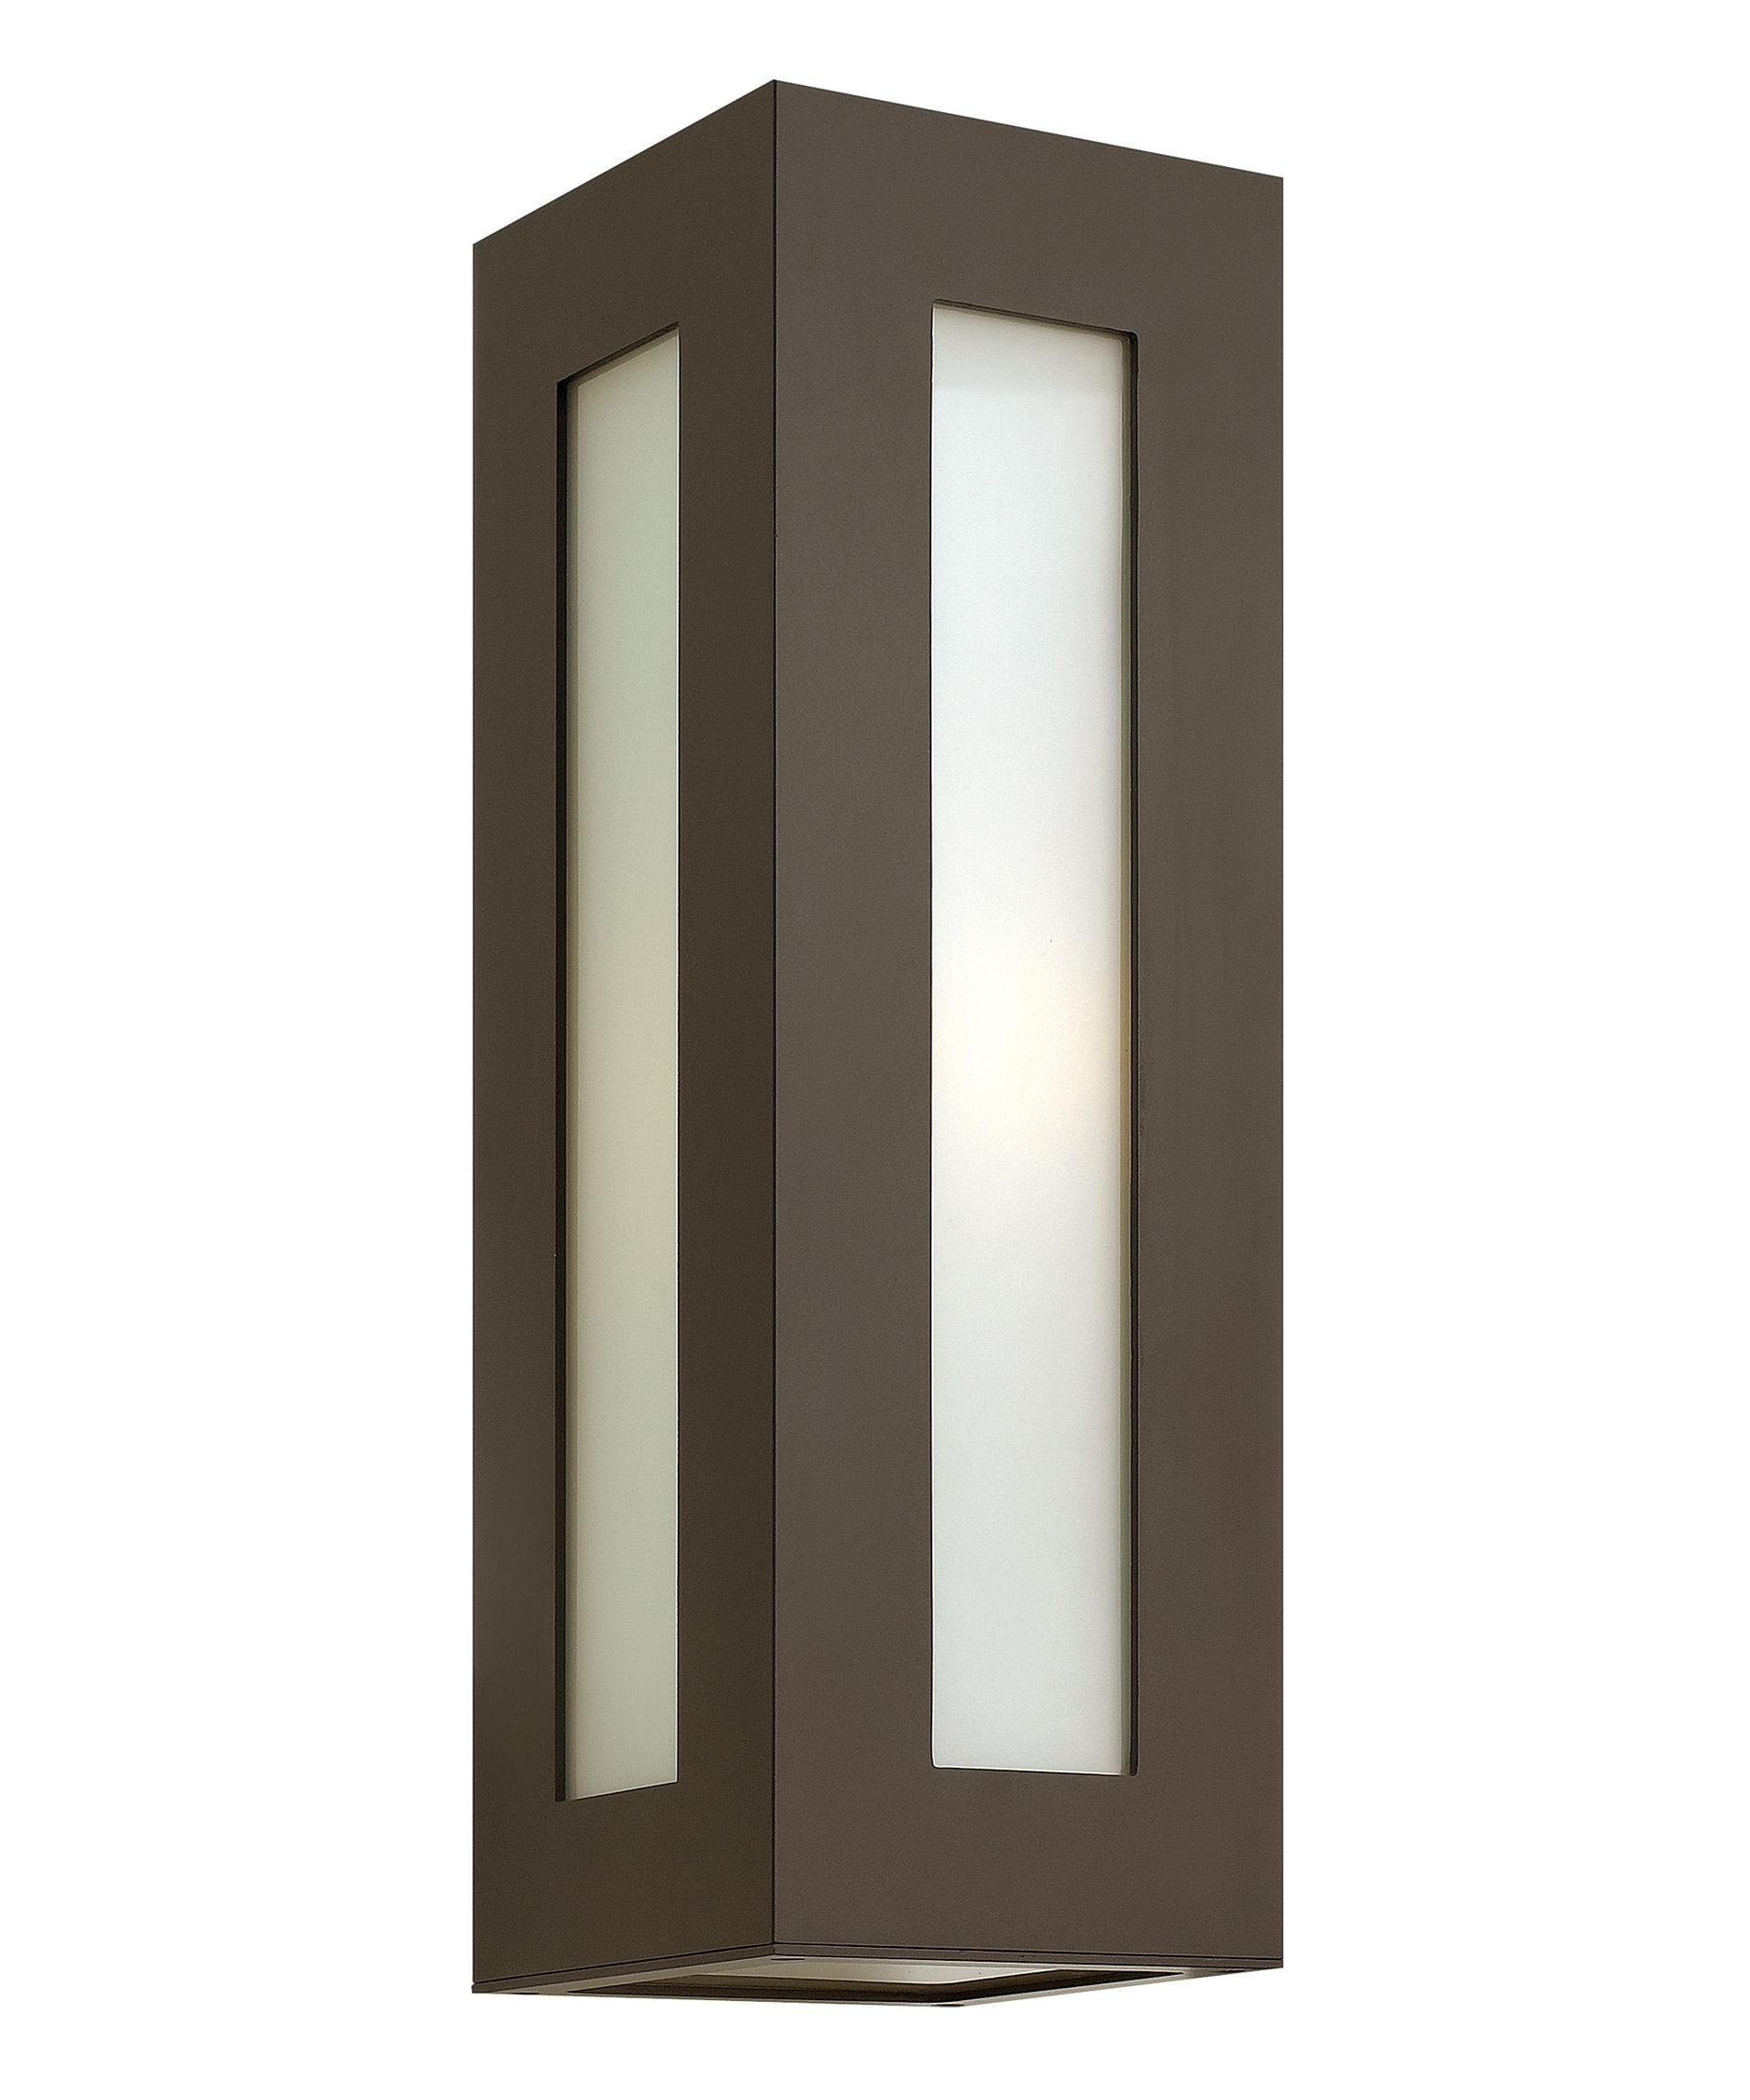 Modern Outdoor Hinkley Lighting Throughout Recent Hinkley Lighting 2194 Dorian 6 Inch Wide 1 Light Outdoor Wall Light (View 5 of 20)